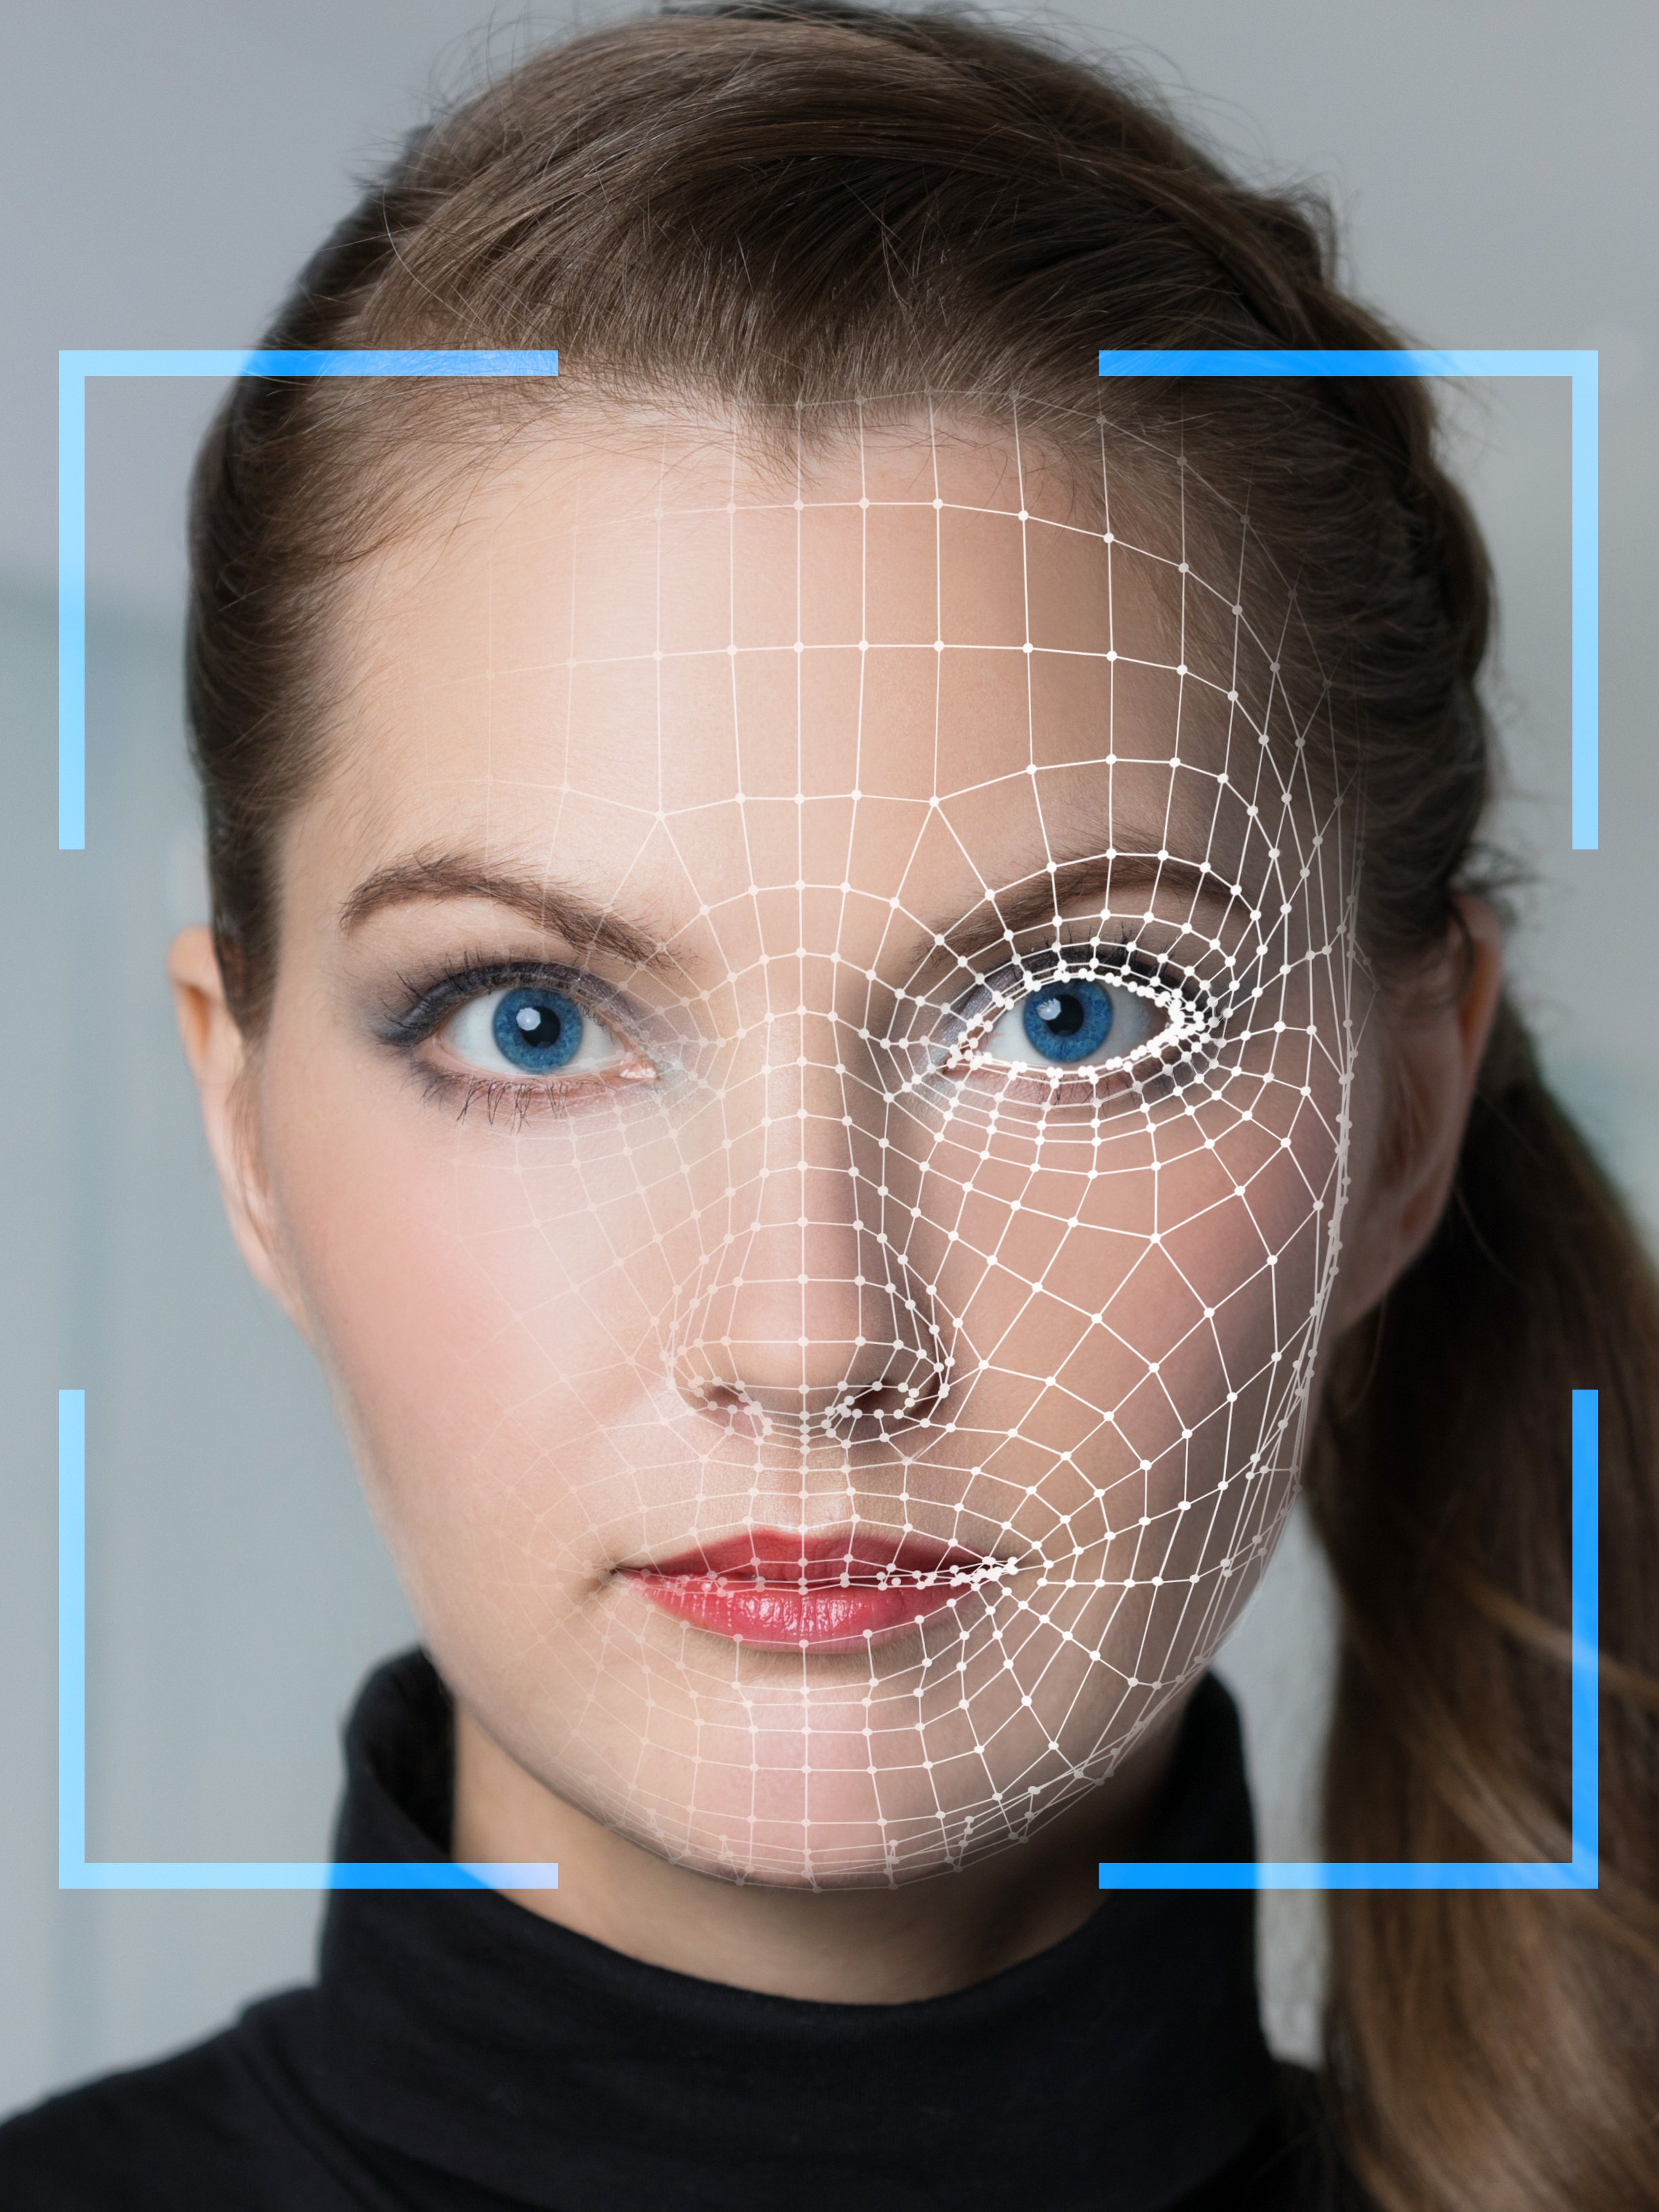 Watch a Facial Recognition Demo